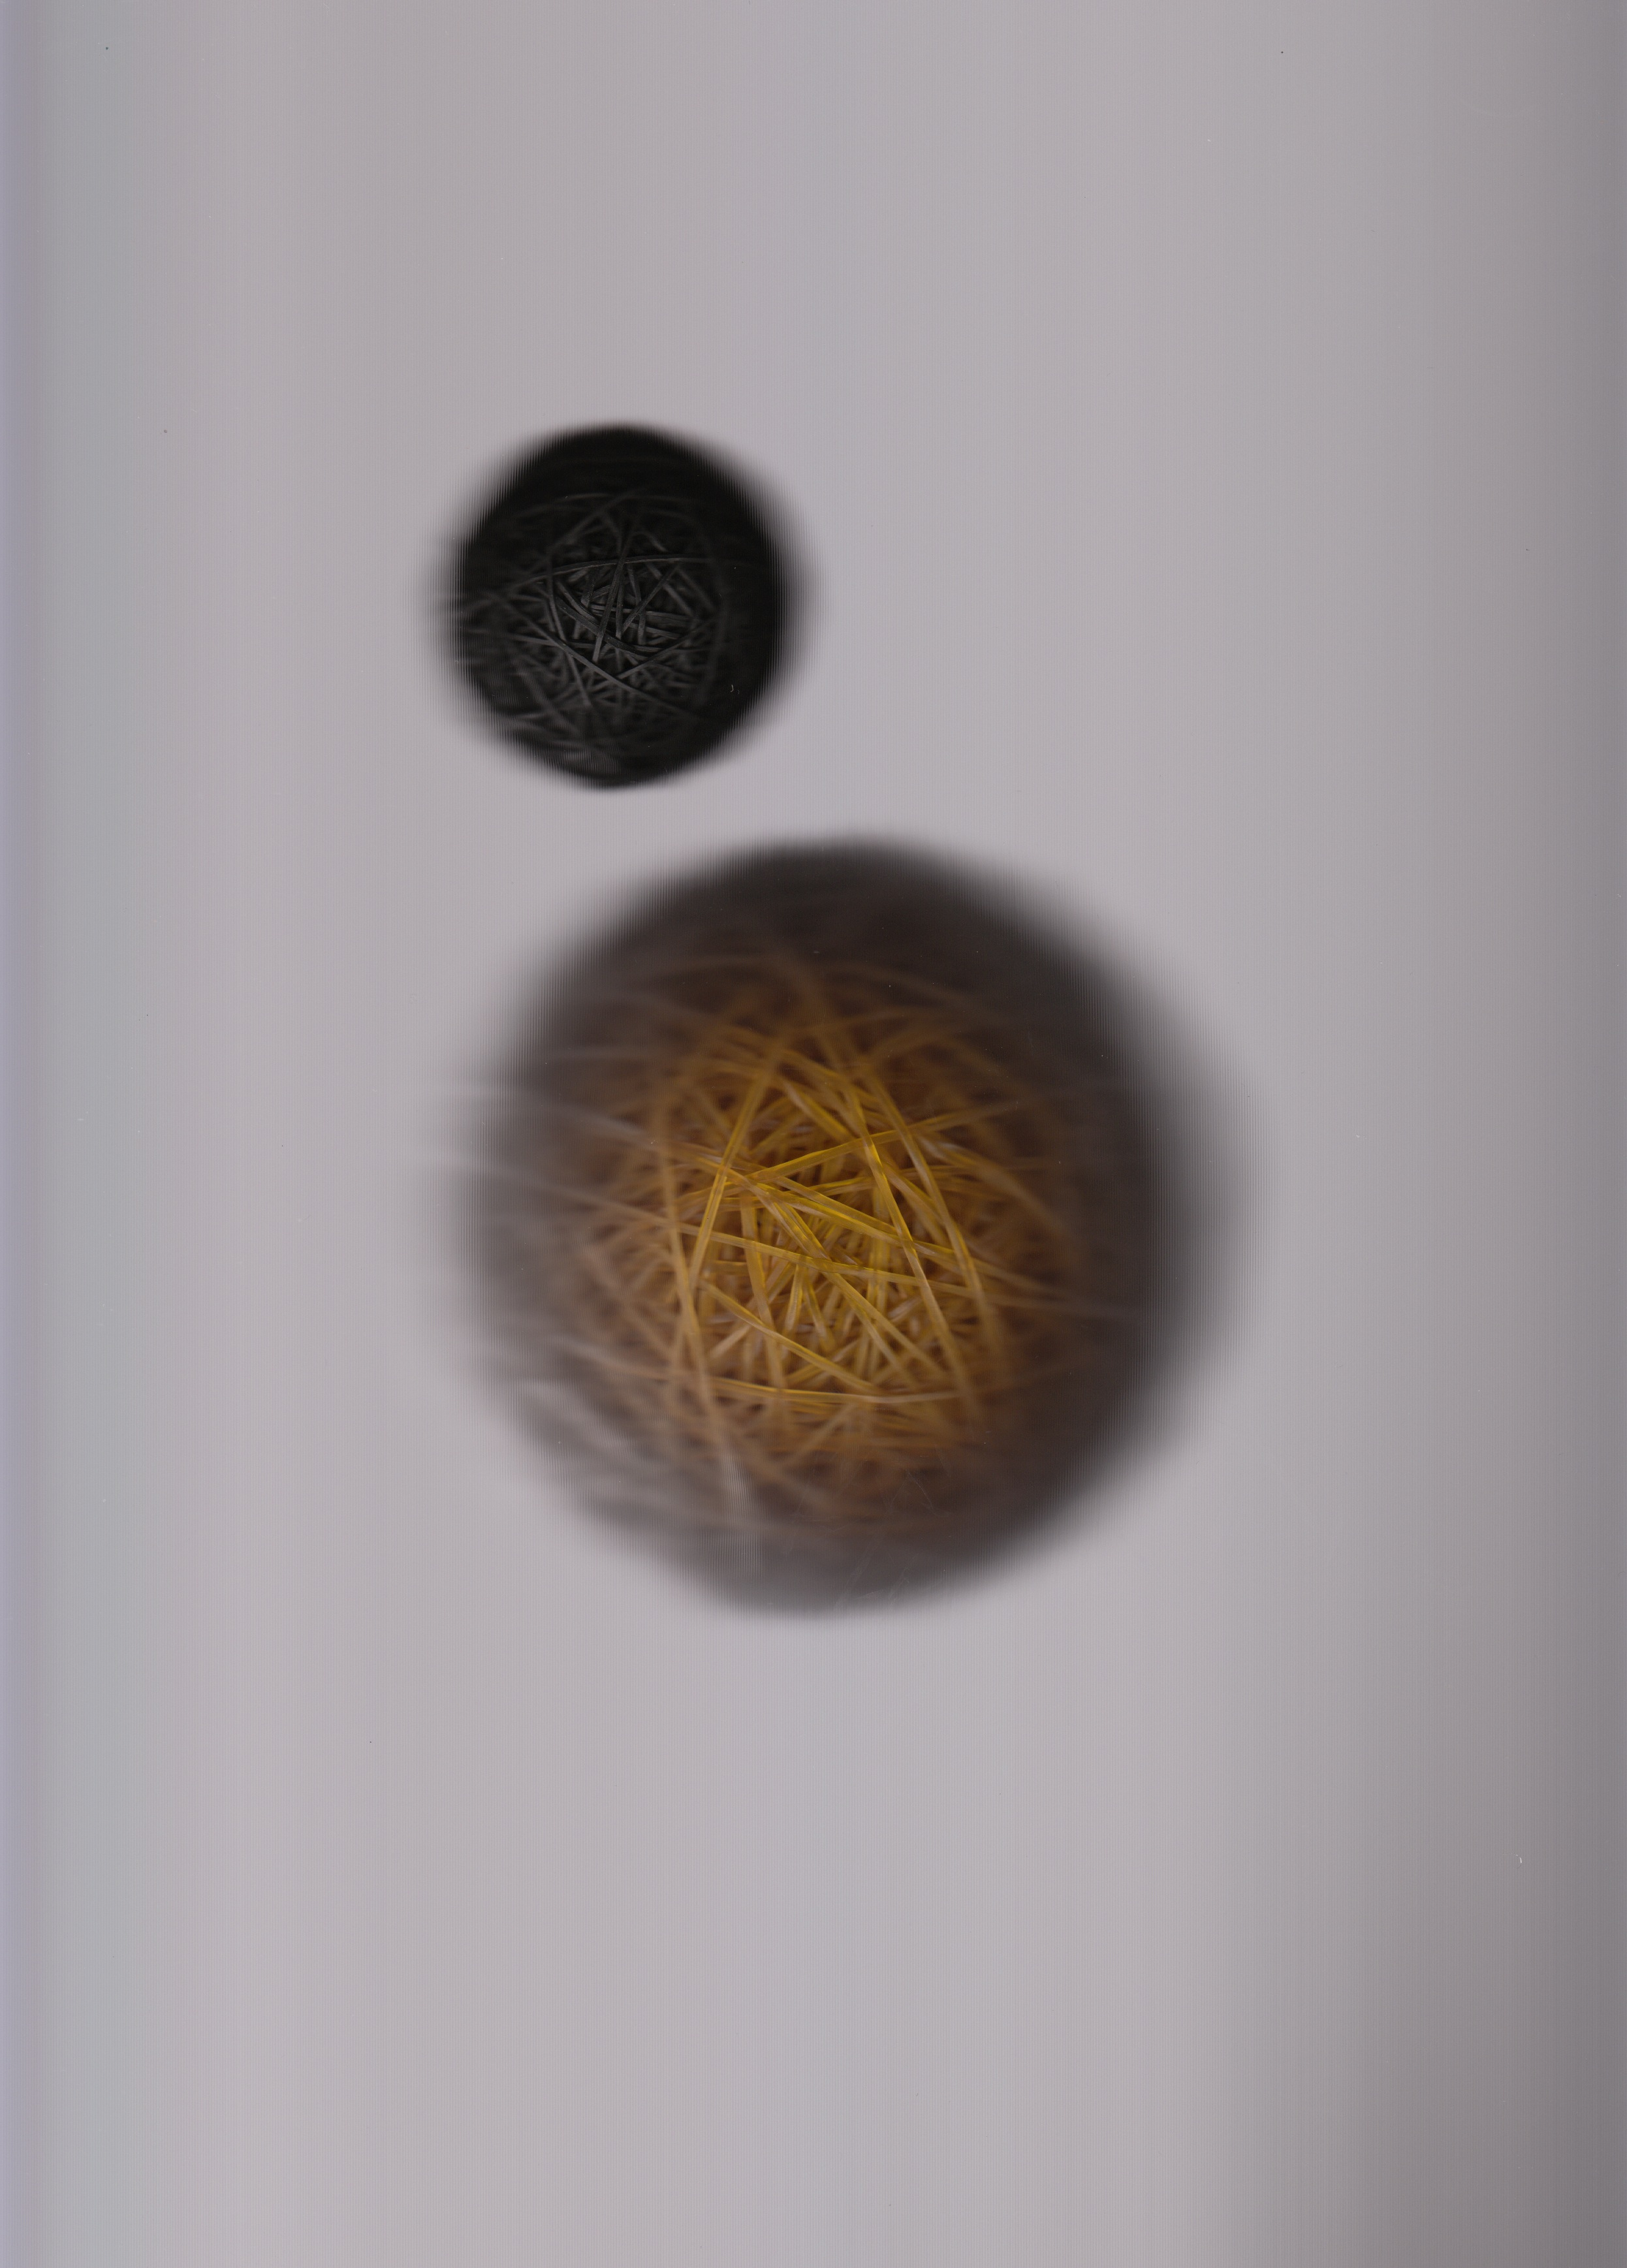 scanned balls at scale